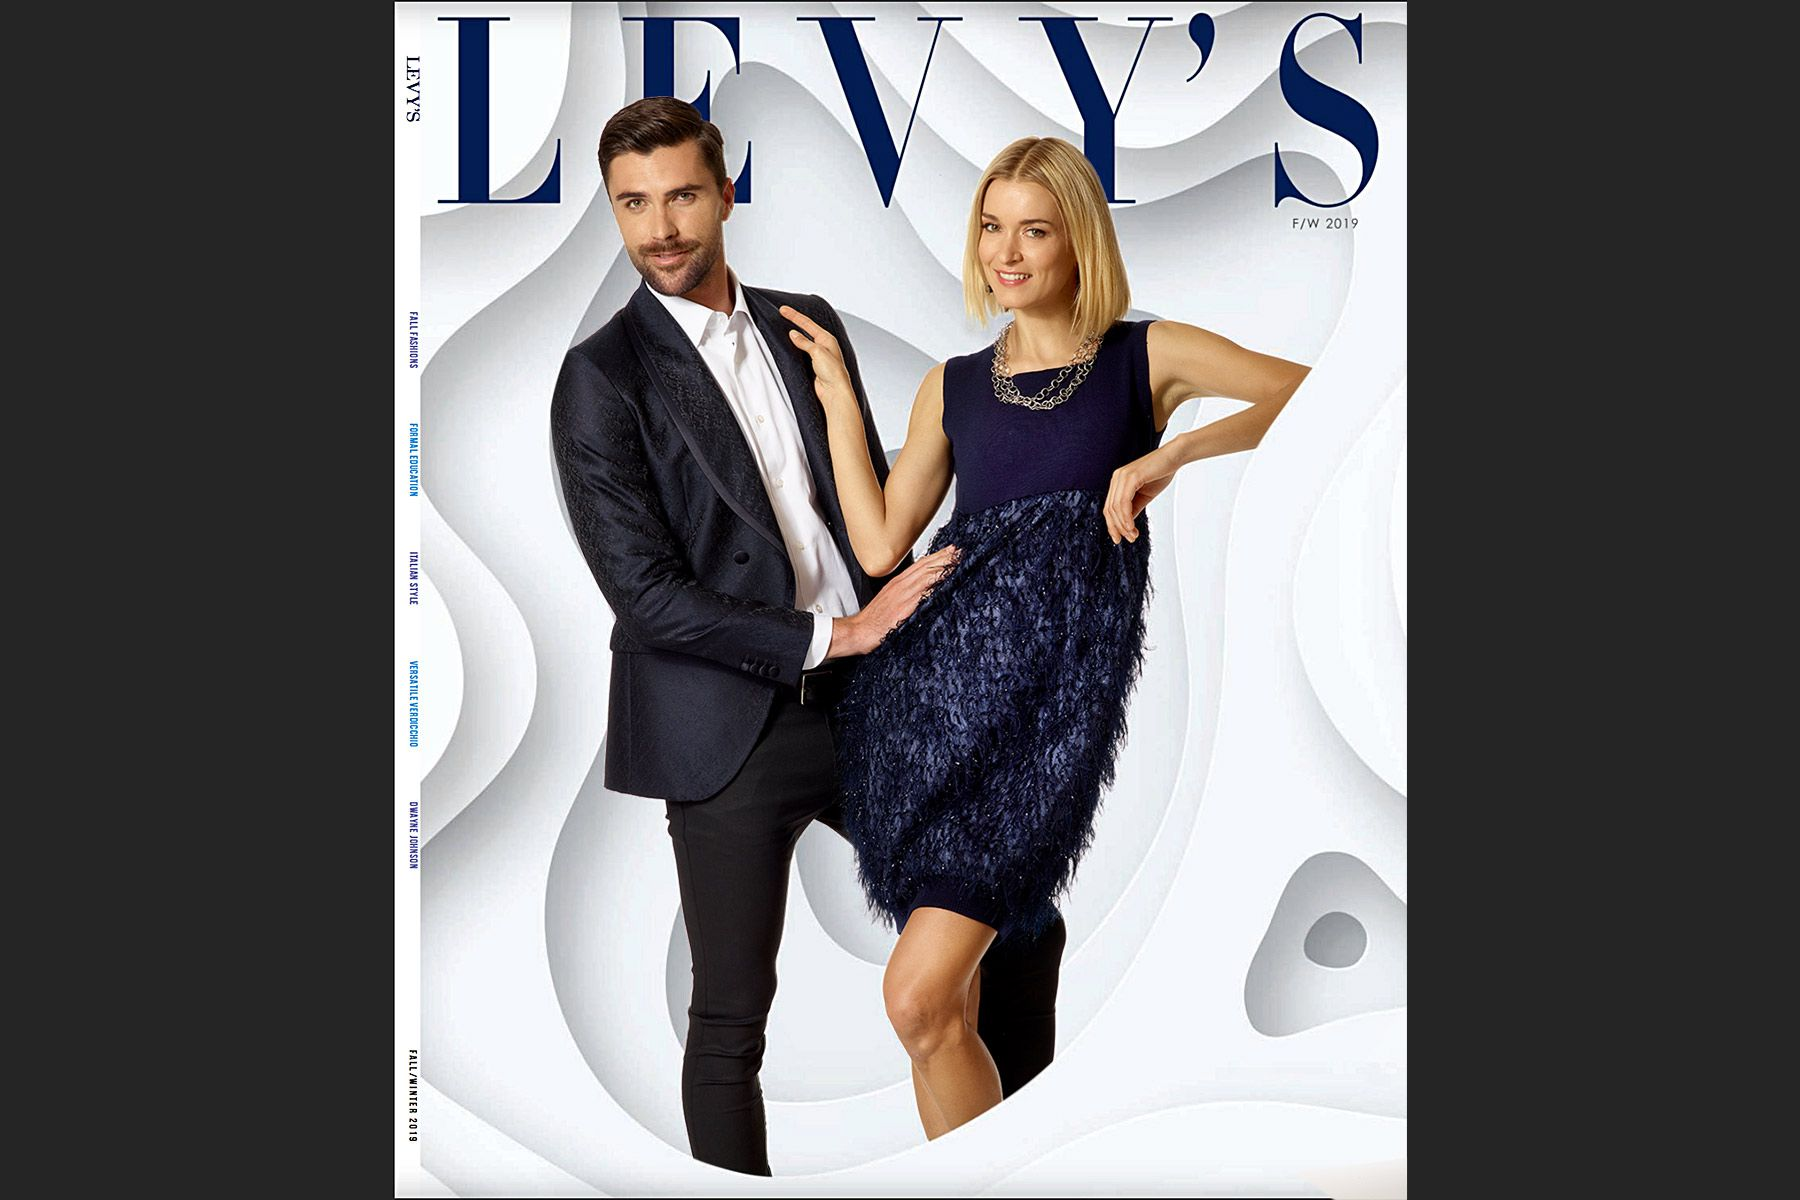 Levy's-fall-19-cover.jpg